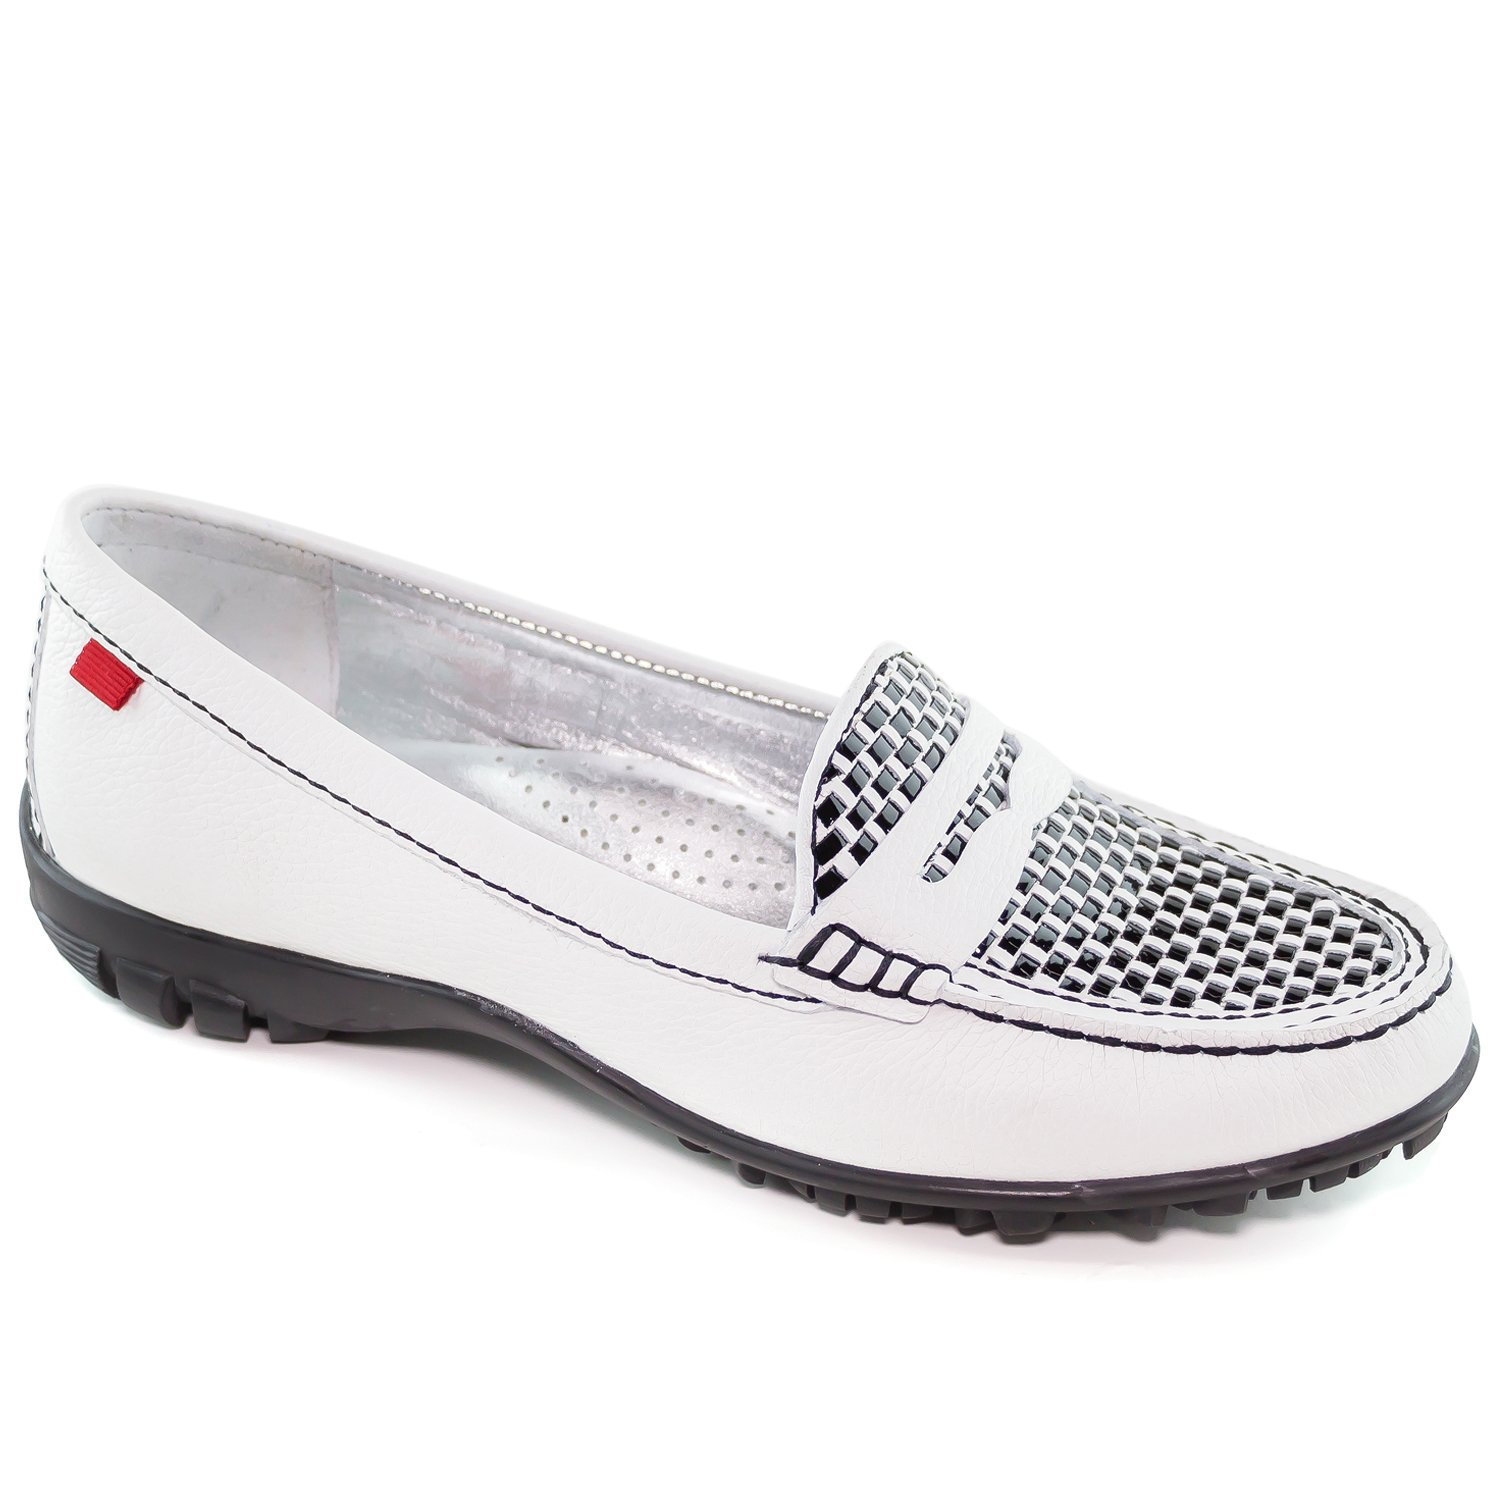 Women's Golf Light Weight Genuine Leather Made In Brazil Union White Grainy Penny With Weave Vamp Golf Performance Marc Joseph NY Fashion Shoes 6